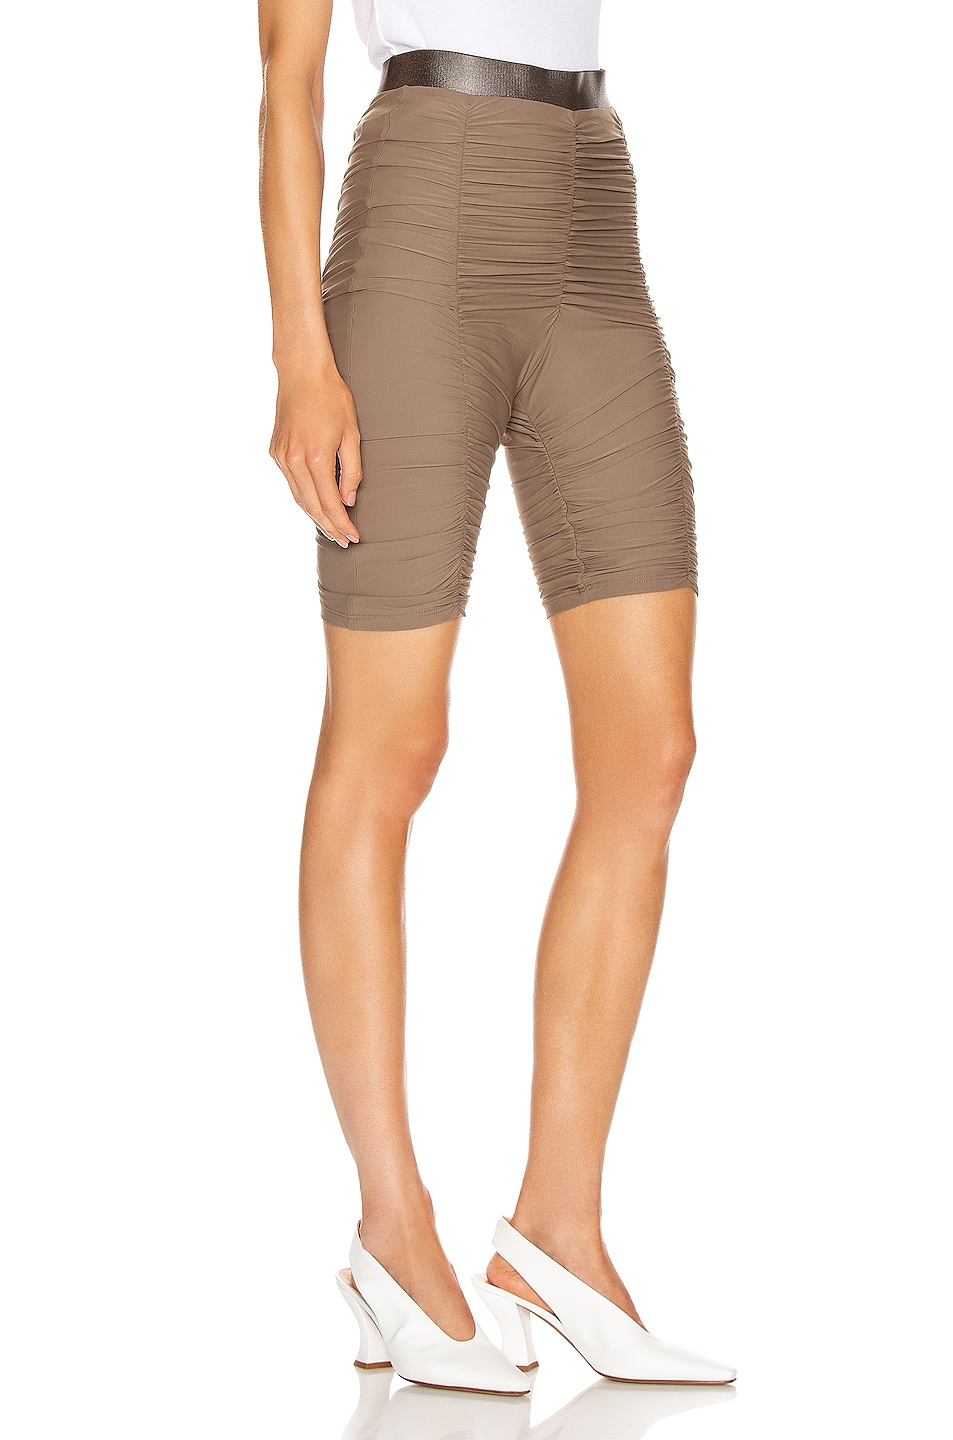 Image 2 of ALIX NYC Nixon Skin Biker Short in Army